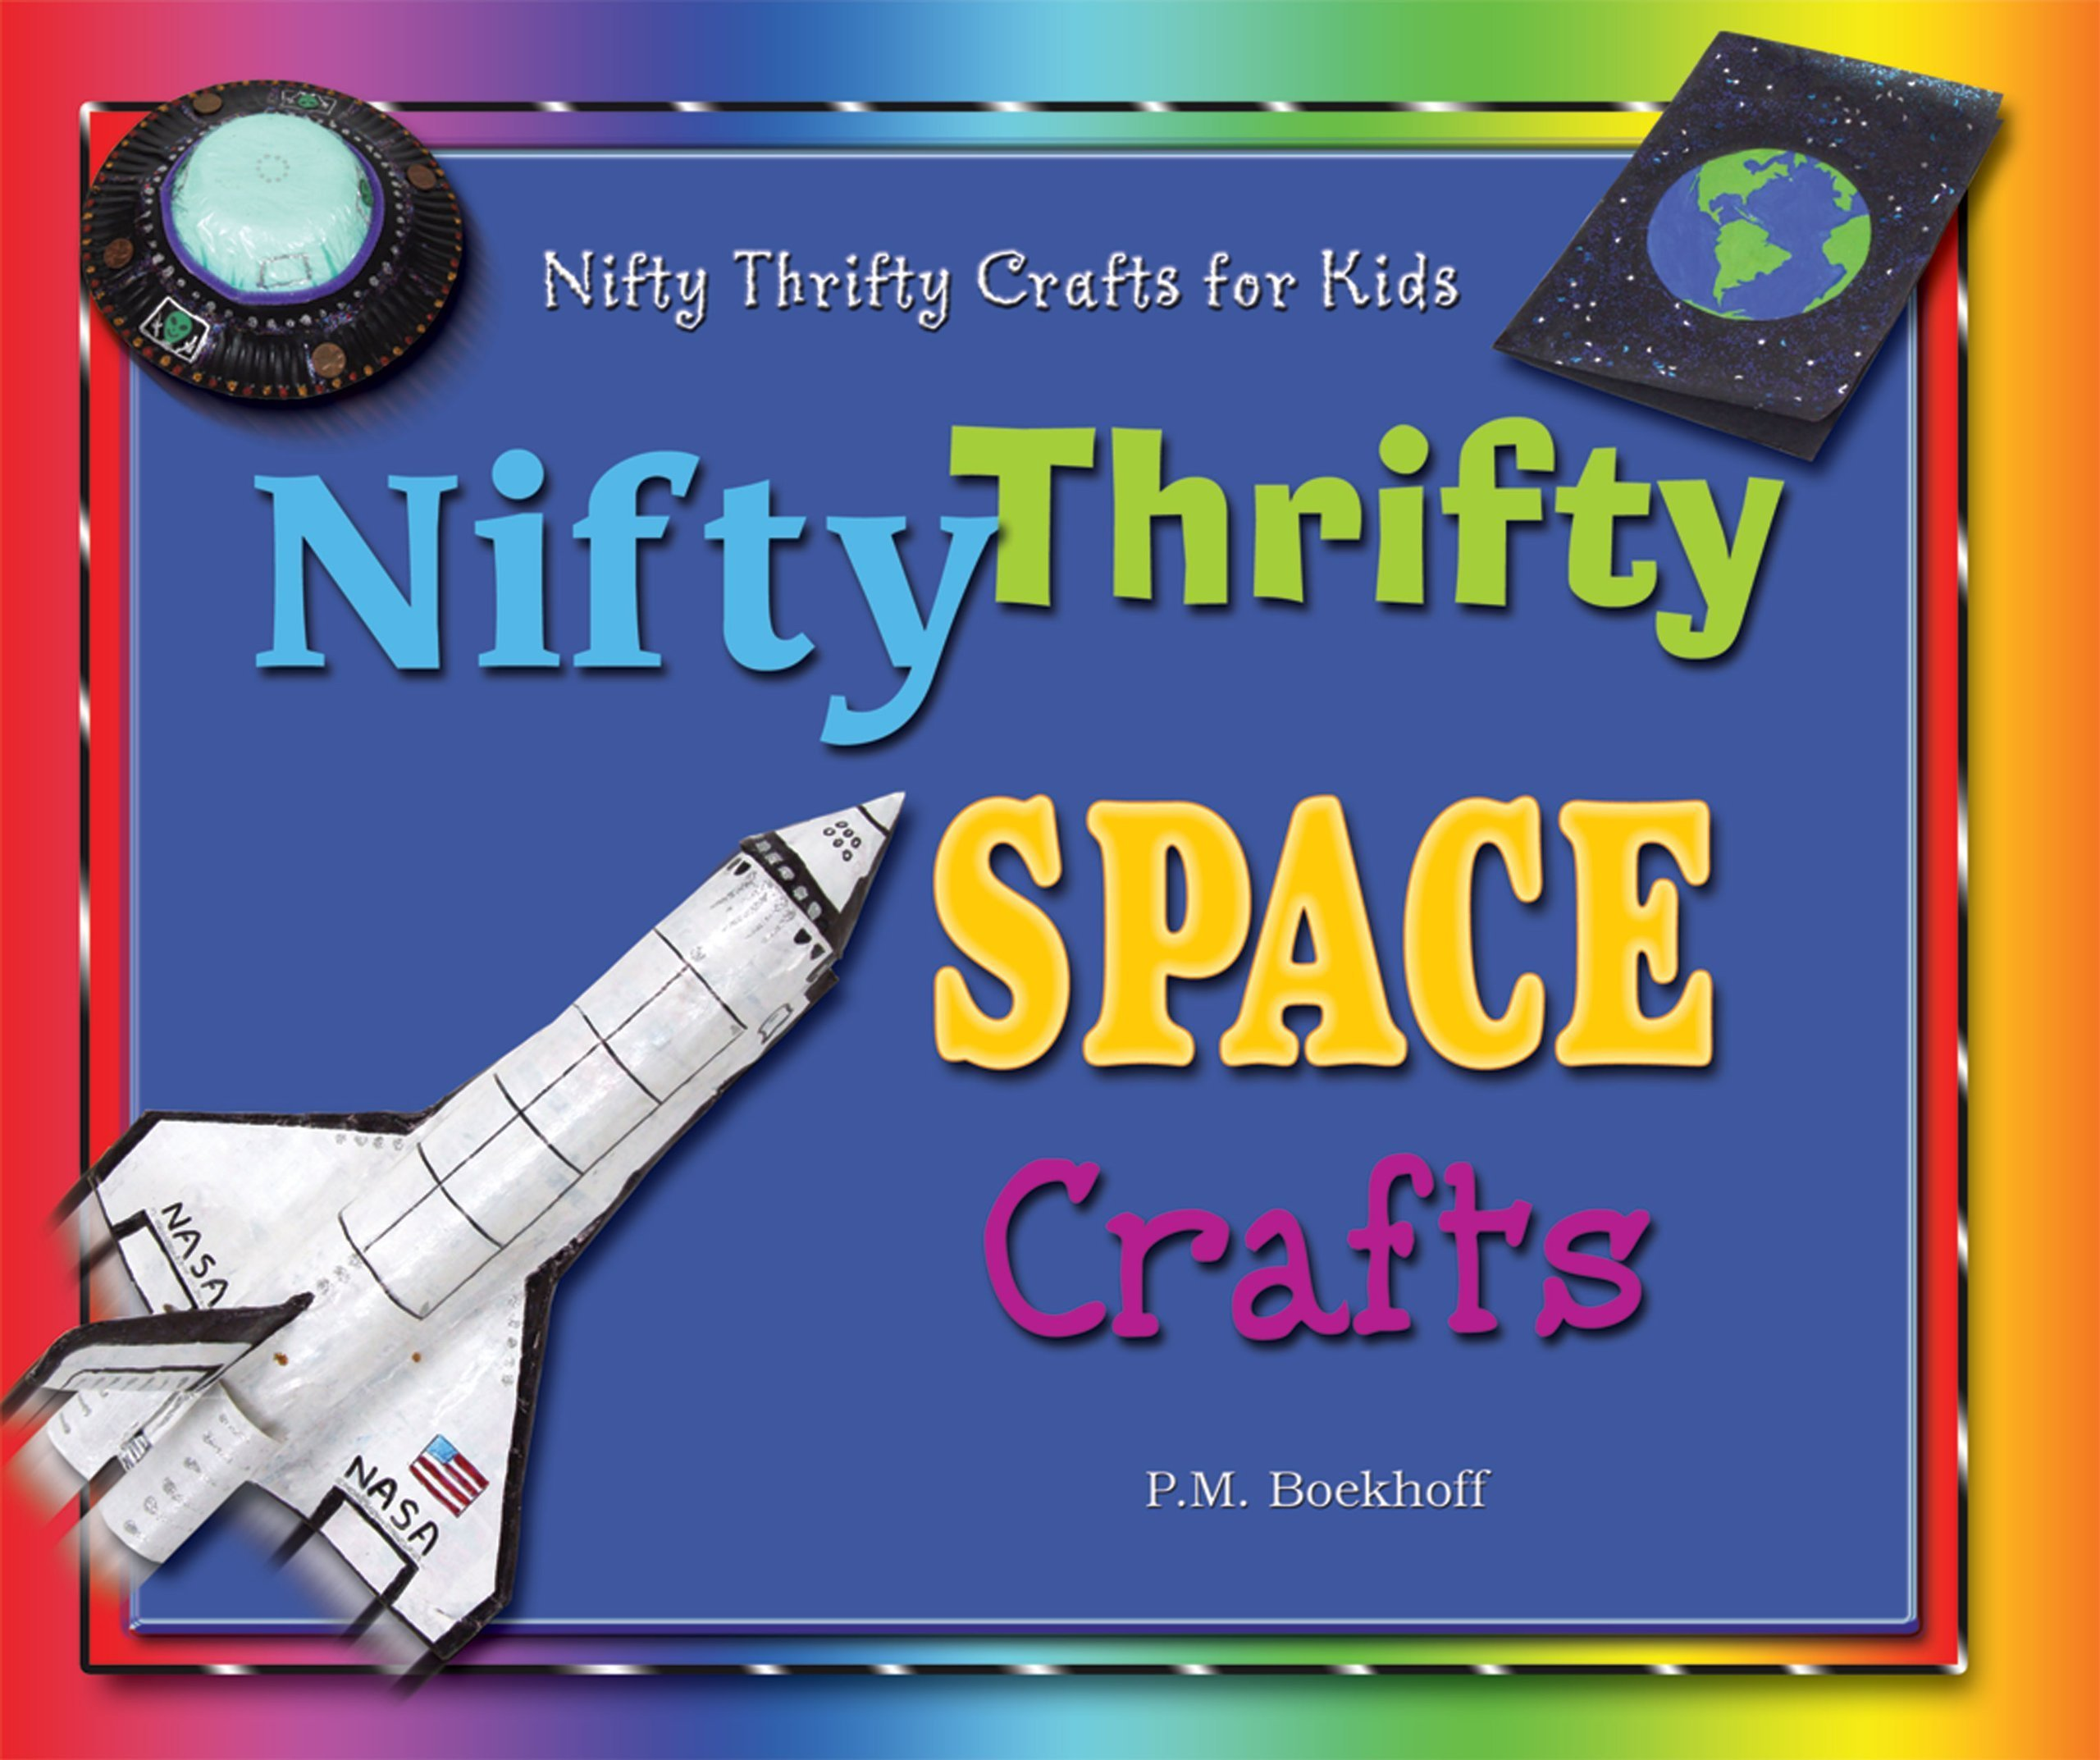 Download Nifty Thrifty Space Crafts (Nifty Thrifty Crafts for Kids) pdf